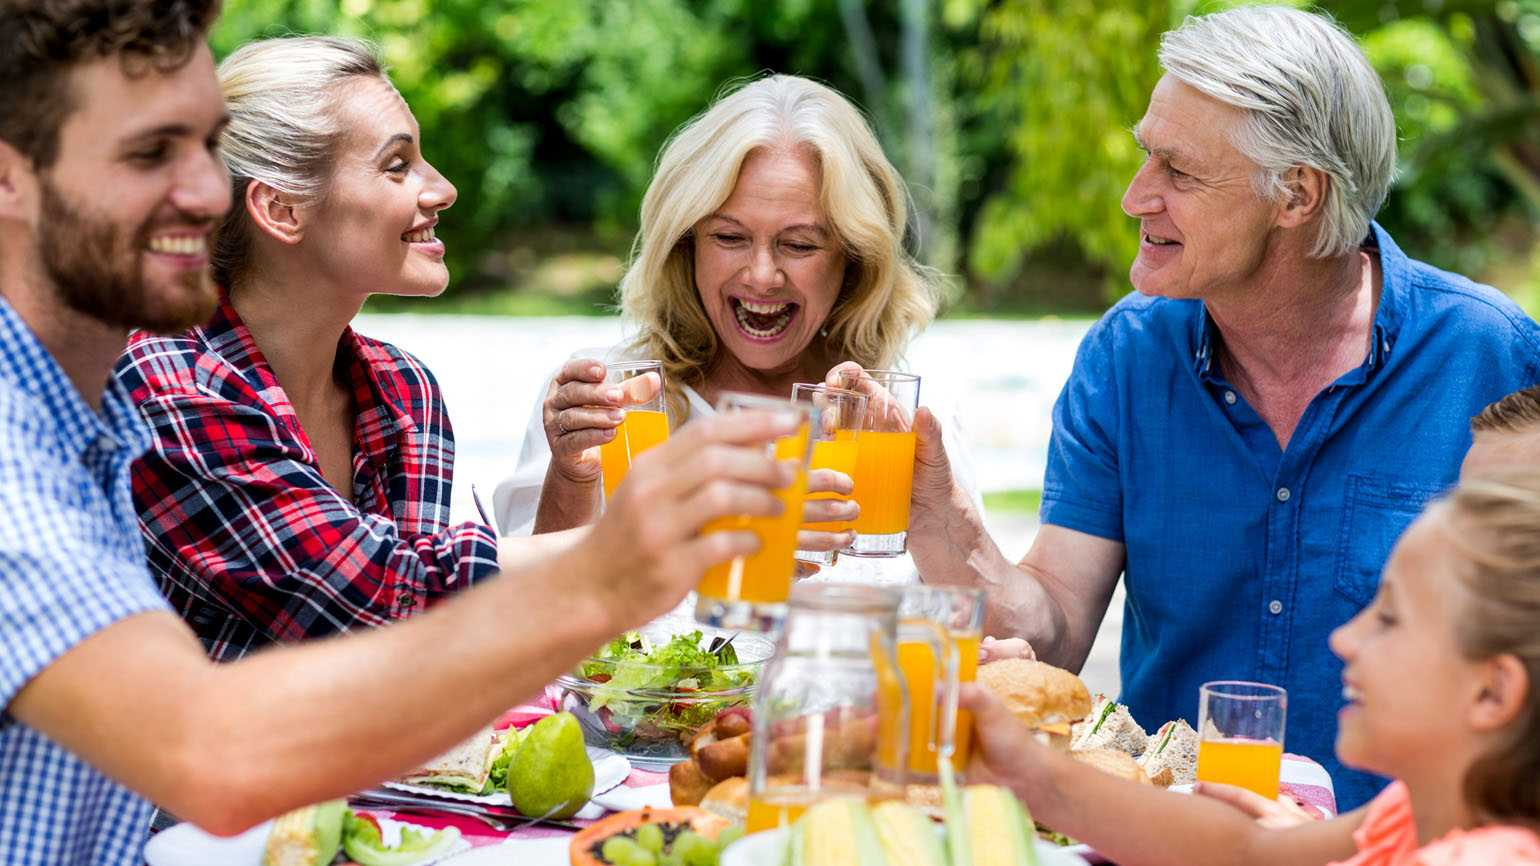 A family enjoying a summer lunch together outdoors.